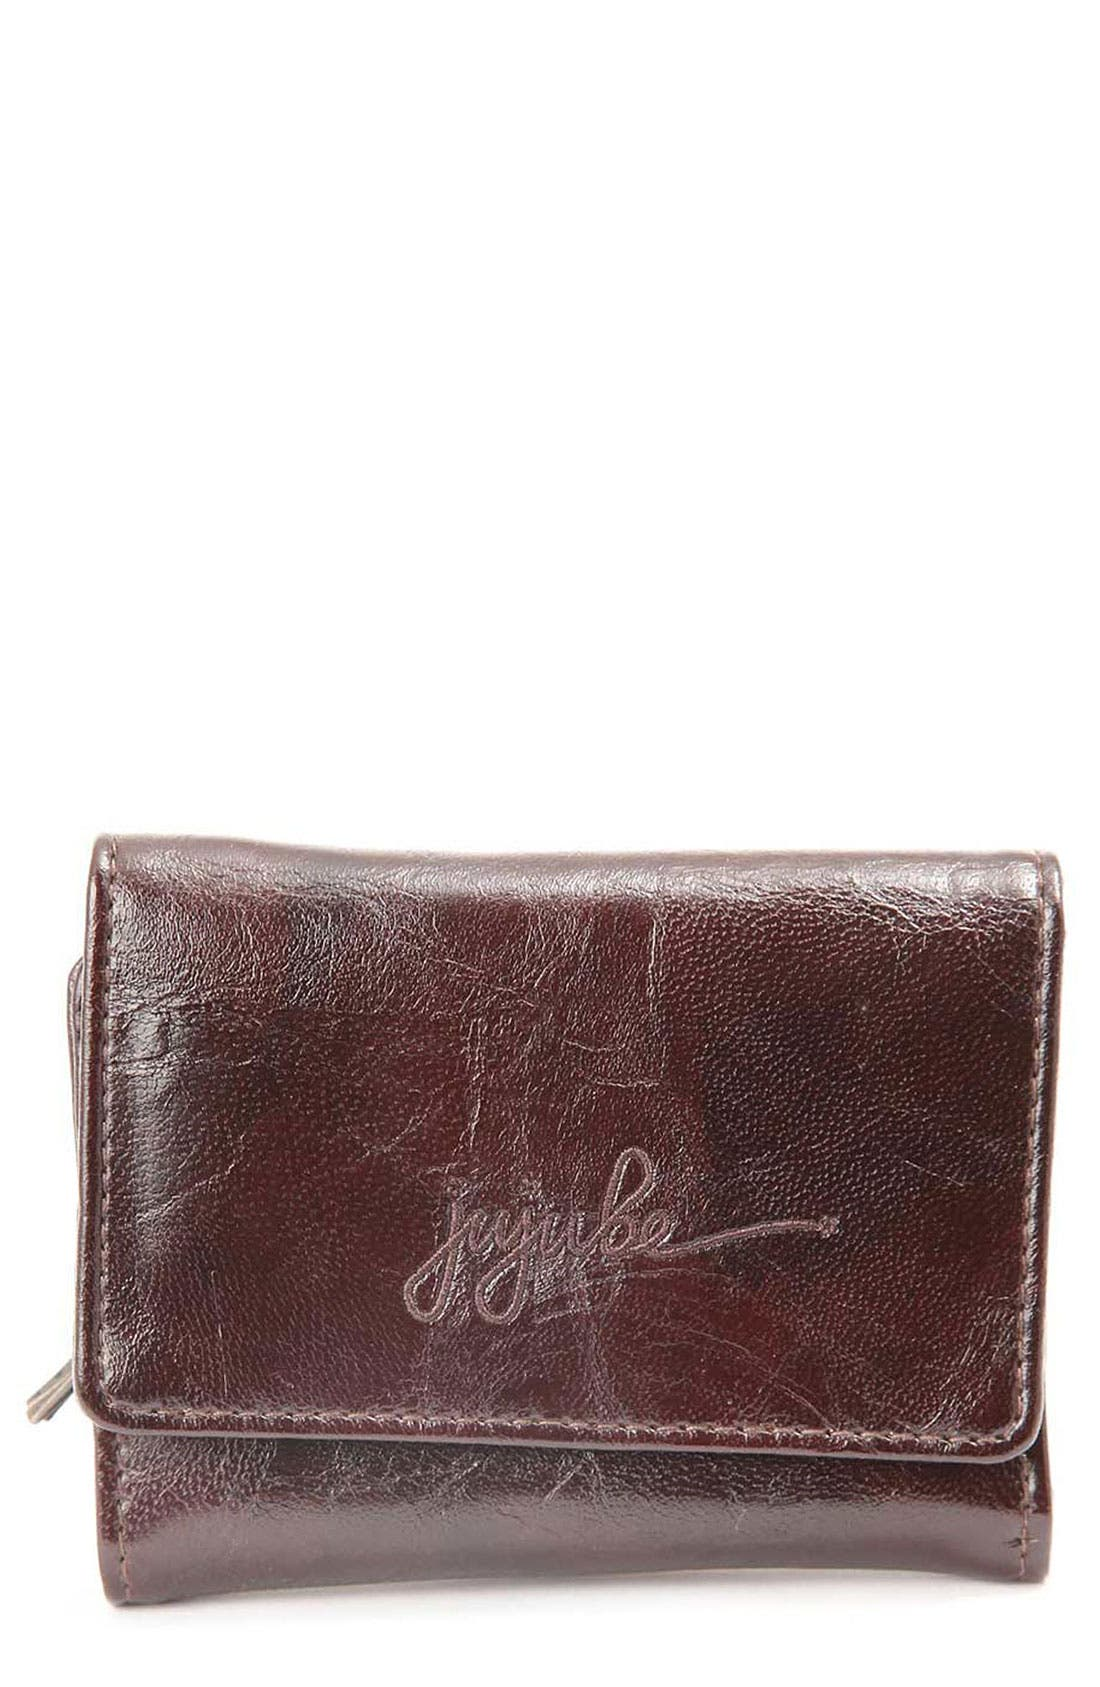 Main Image - Ju-Ju-Be 'Be Thrifty - Legacy' Flap Wallet